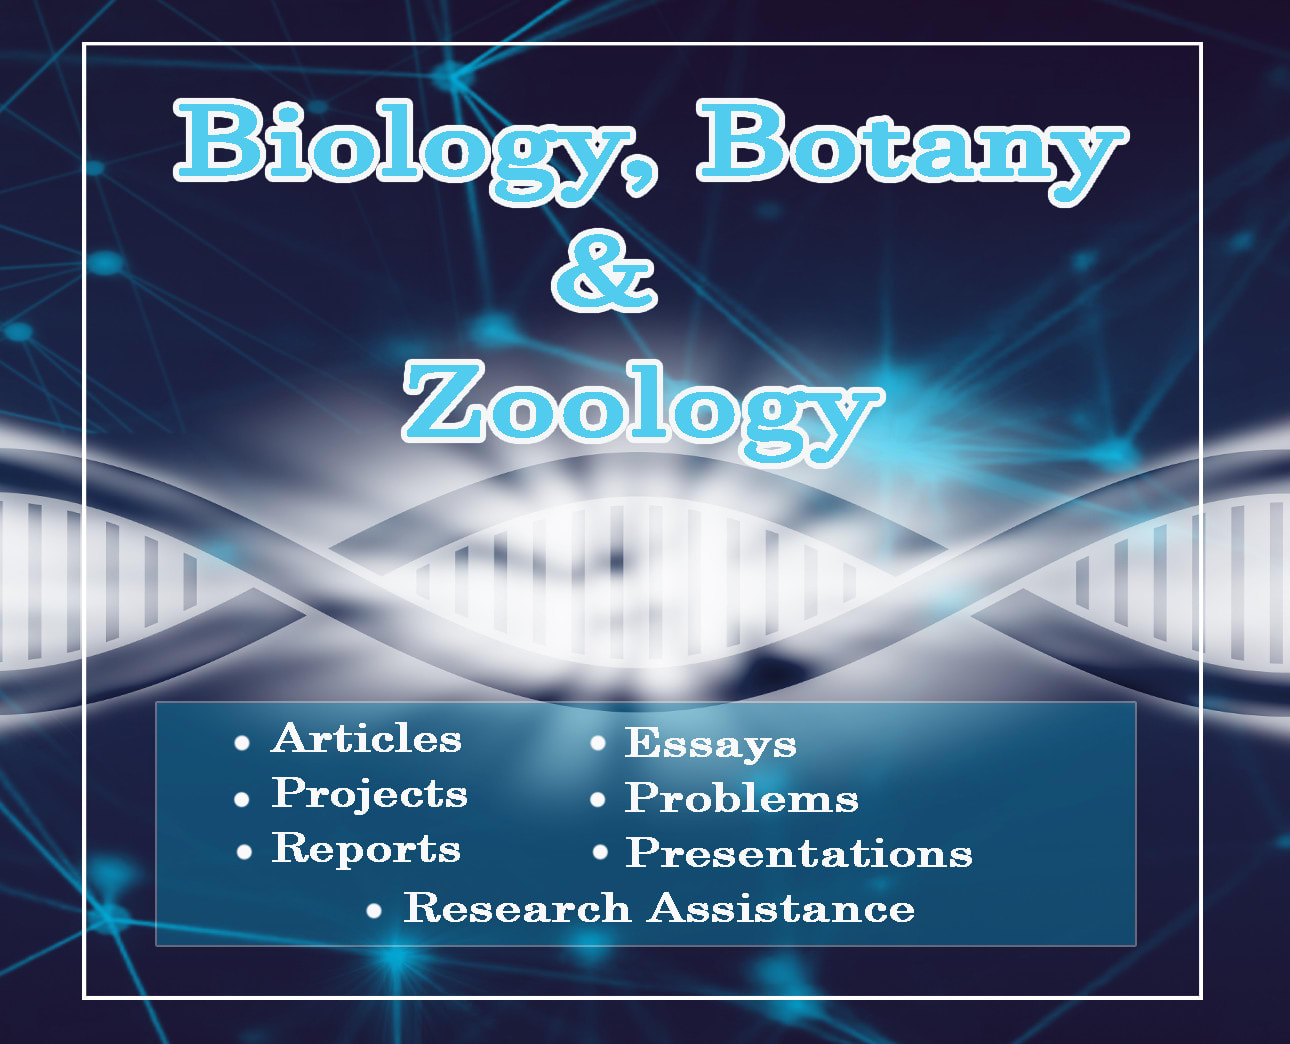 Write botany essays should i write a letter to the judge